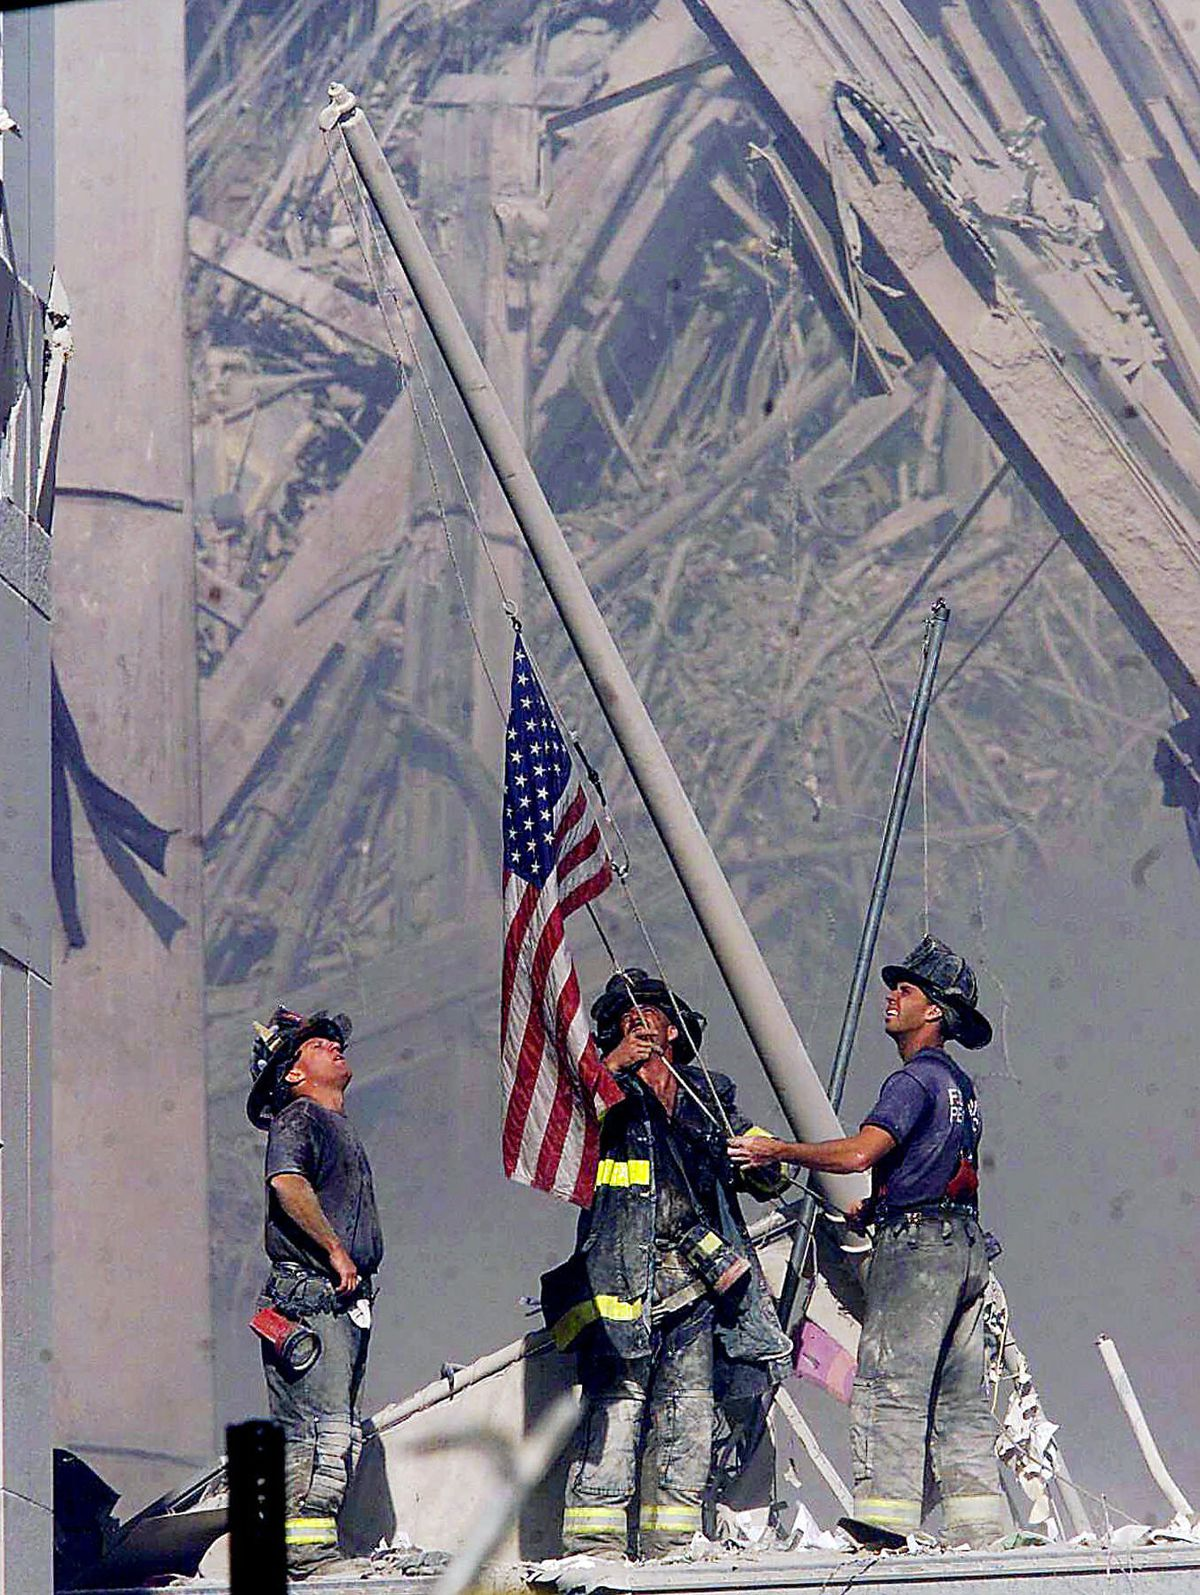 Brooklyn firefighters George Johnson, left, of ladder 157, Dan McWilliams, center, of ladder 157, and Billy Eisengrein, right, of Rescue 2, raise a flag at the World Trade Center in New York in this Sept. 11, 2001 file photo.